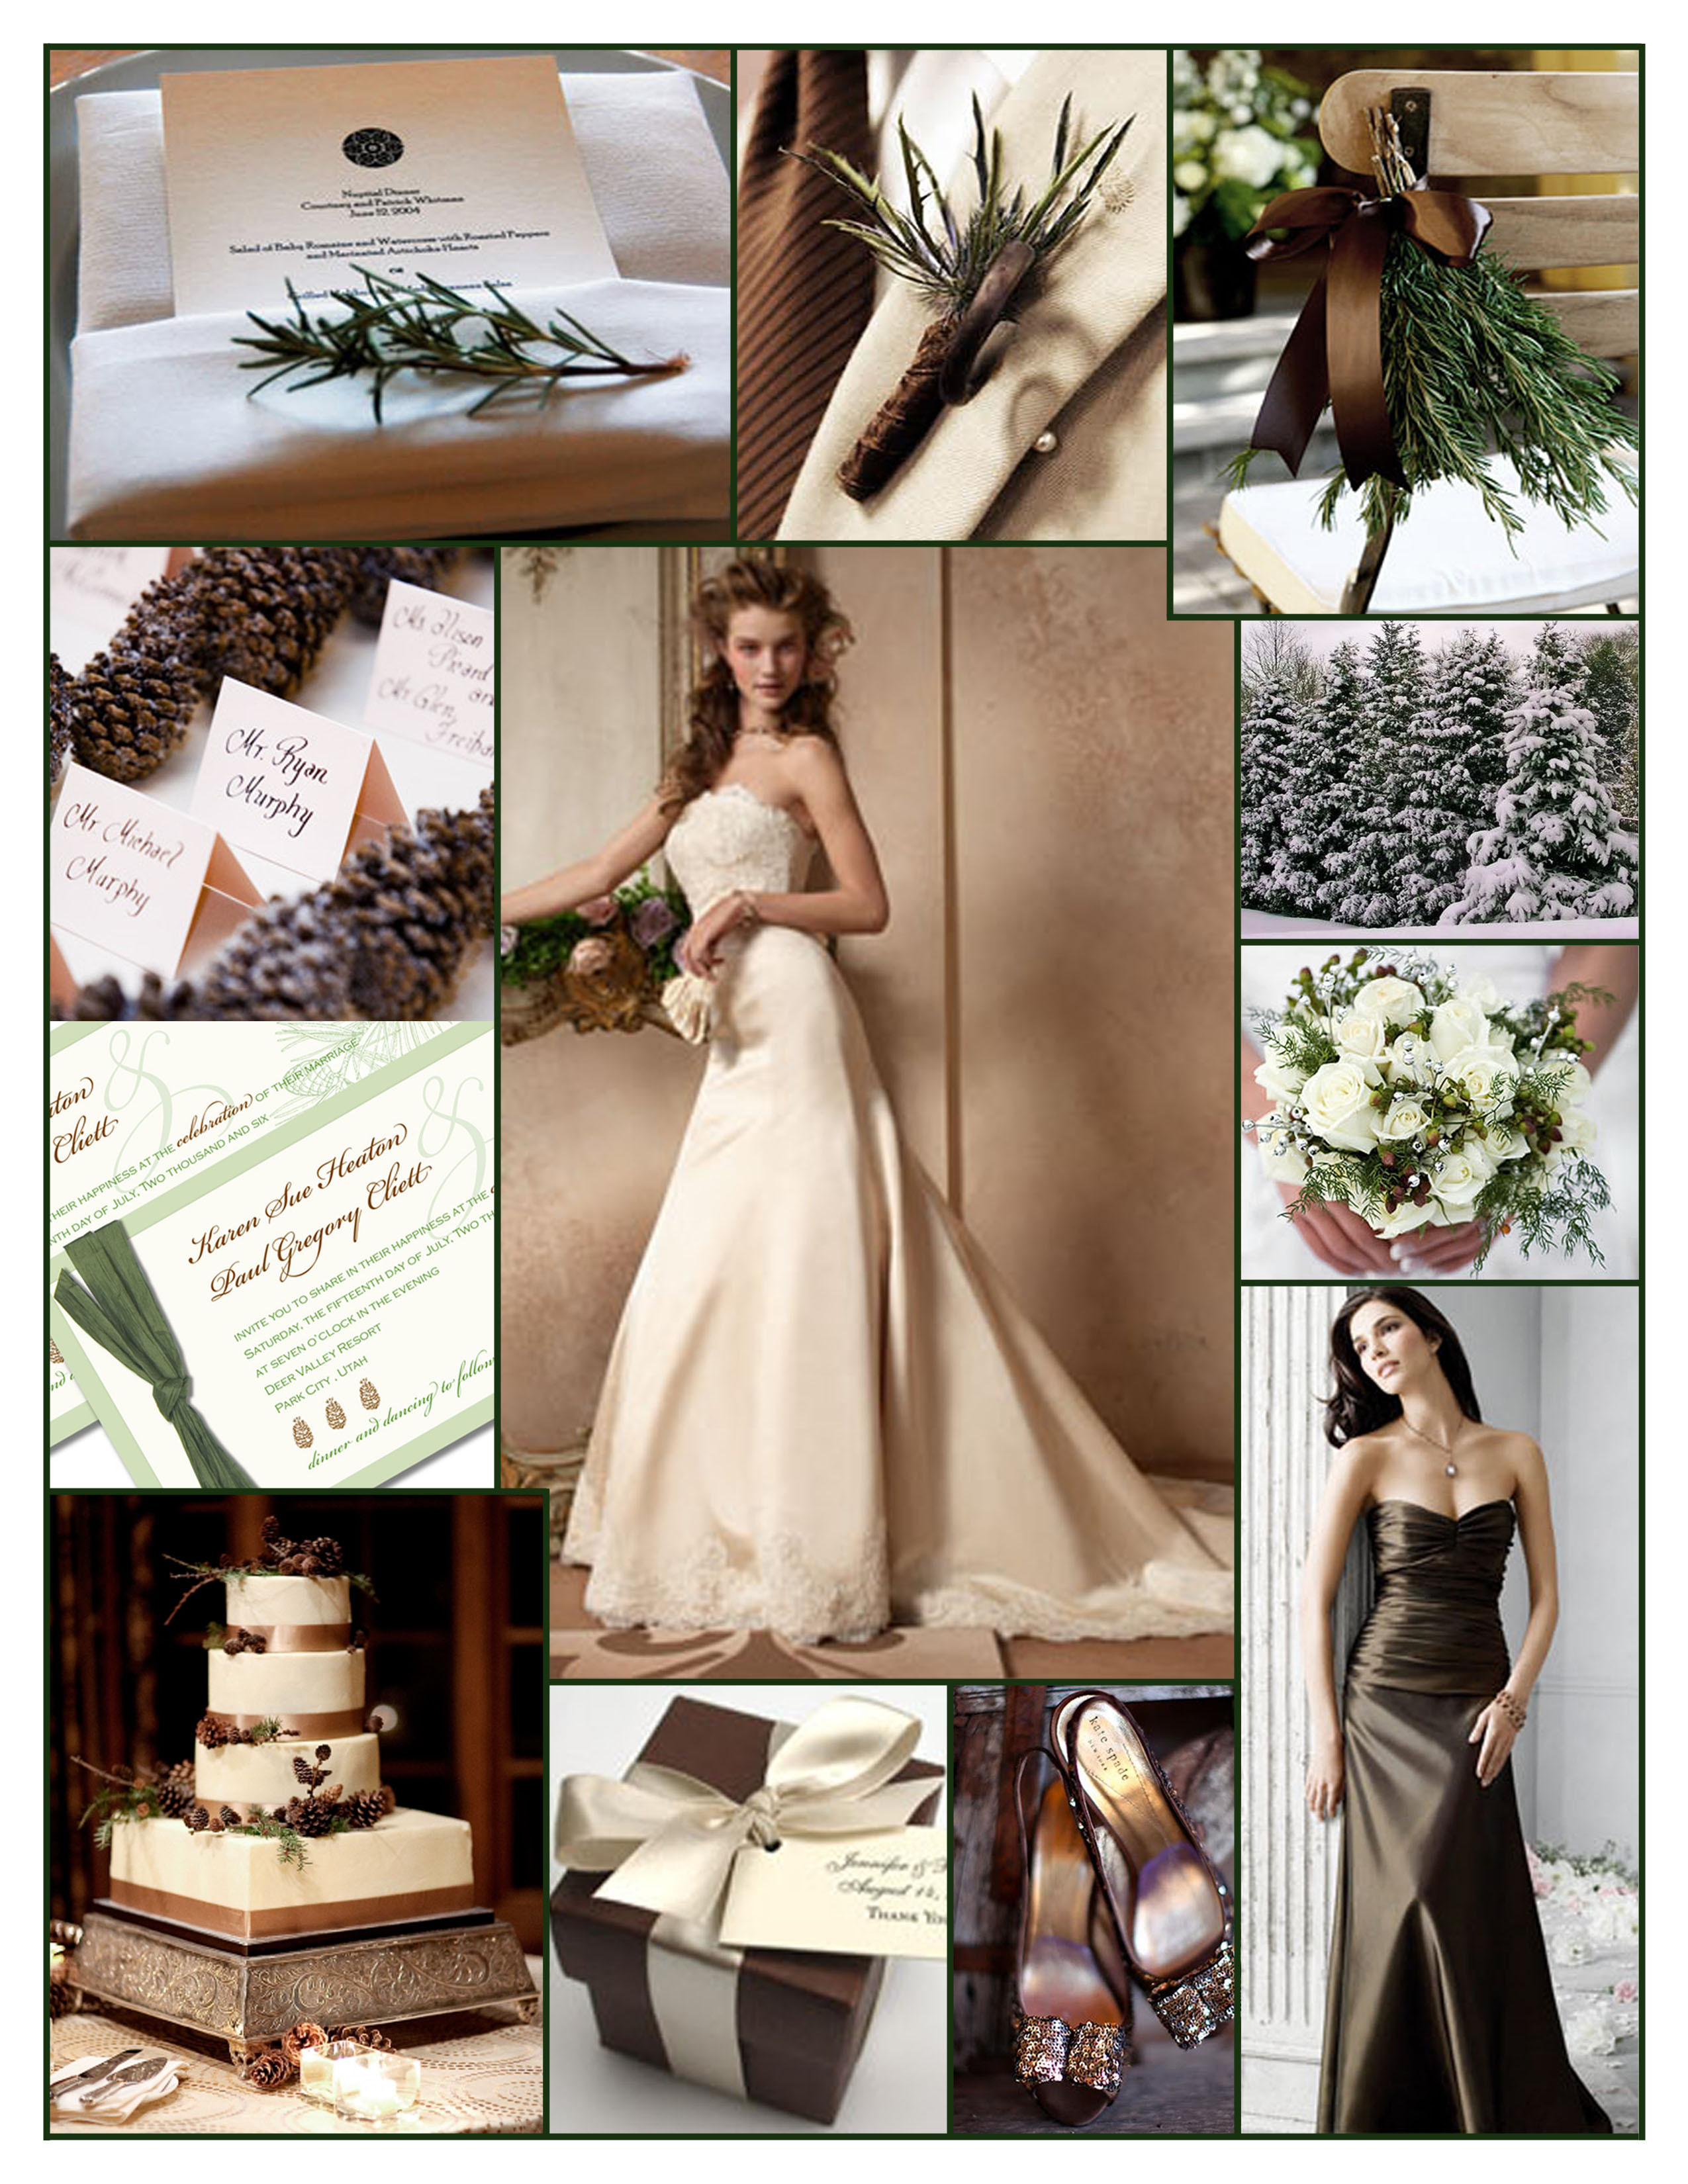 Inspiration, Reception, Flowers & Decor, Bridesmaids, Bridesmaids Dresses, Wedding Dresses, Stationery, Cakes, Fashion, white, green, brown, cake, dress, Bridesmaid Bouquets, Winter, Invitations, Flowers, Board, Holiday, Christmas, Alvina valenta, Pinecone, Pine, Jim hjelm occasions, winter wedding dresses, Flower Wedding Dresses